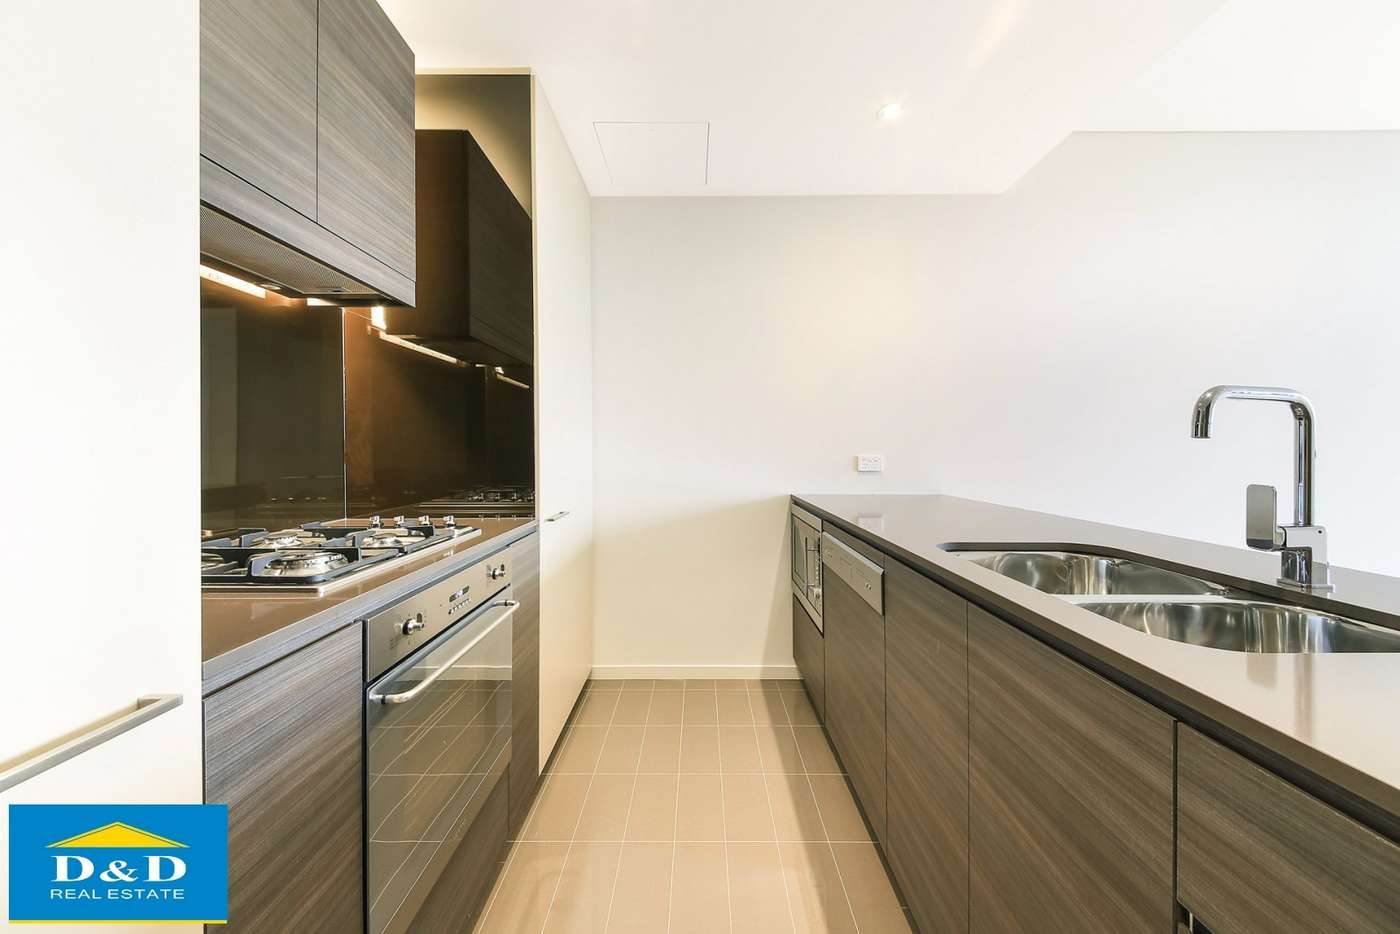 Main view of Homely apartment listing, 12.13 / 45 Macquarie Street, Parramatta NSW 2150